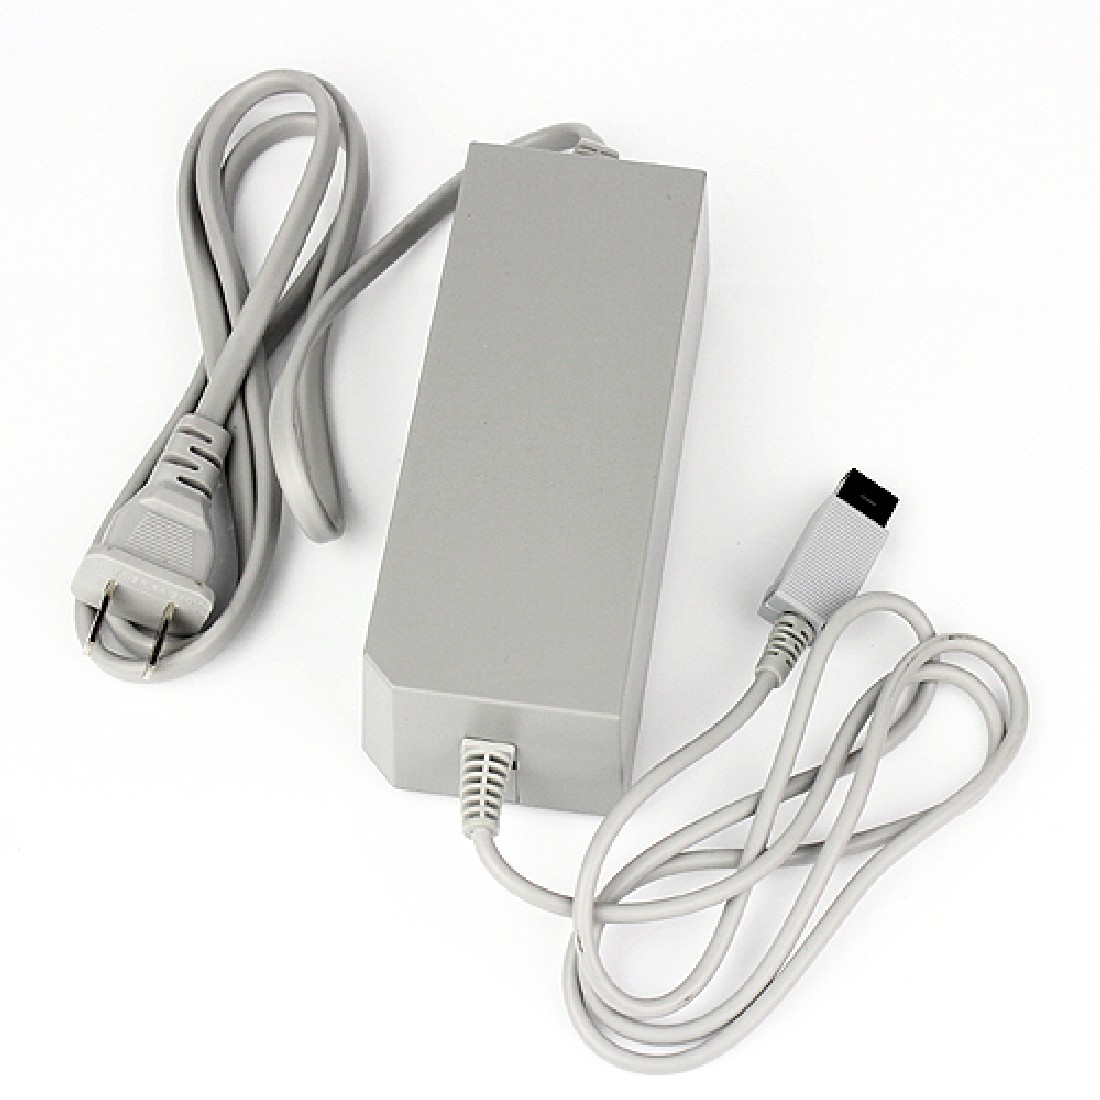 2016 US Plug Replacement AC Power Wall Adapter Supply Cable Cord For Nintendo Wii high quality